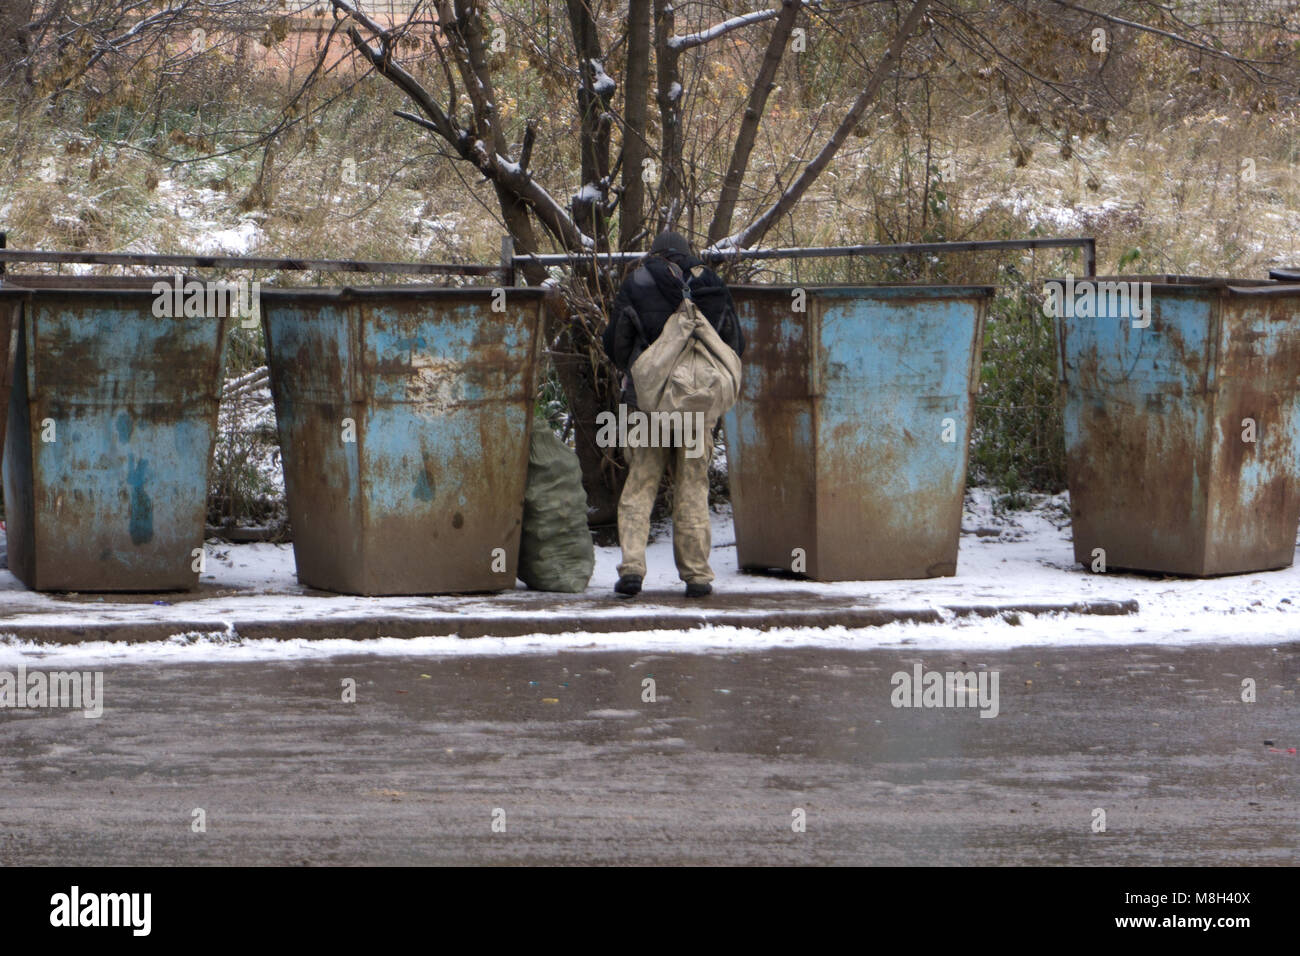 The lame homeless vagrants near the garbage cans looking for empty bottles and leftover food. The problem of homeless - Stock Image